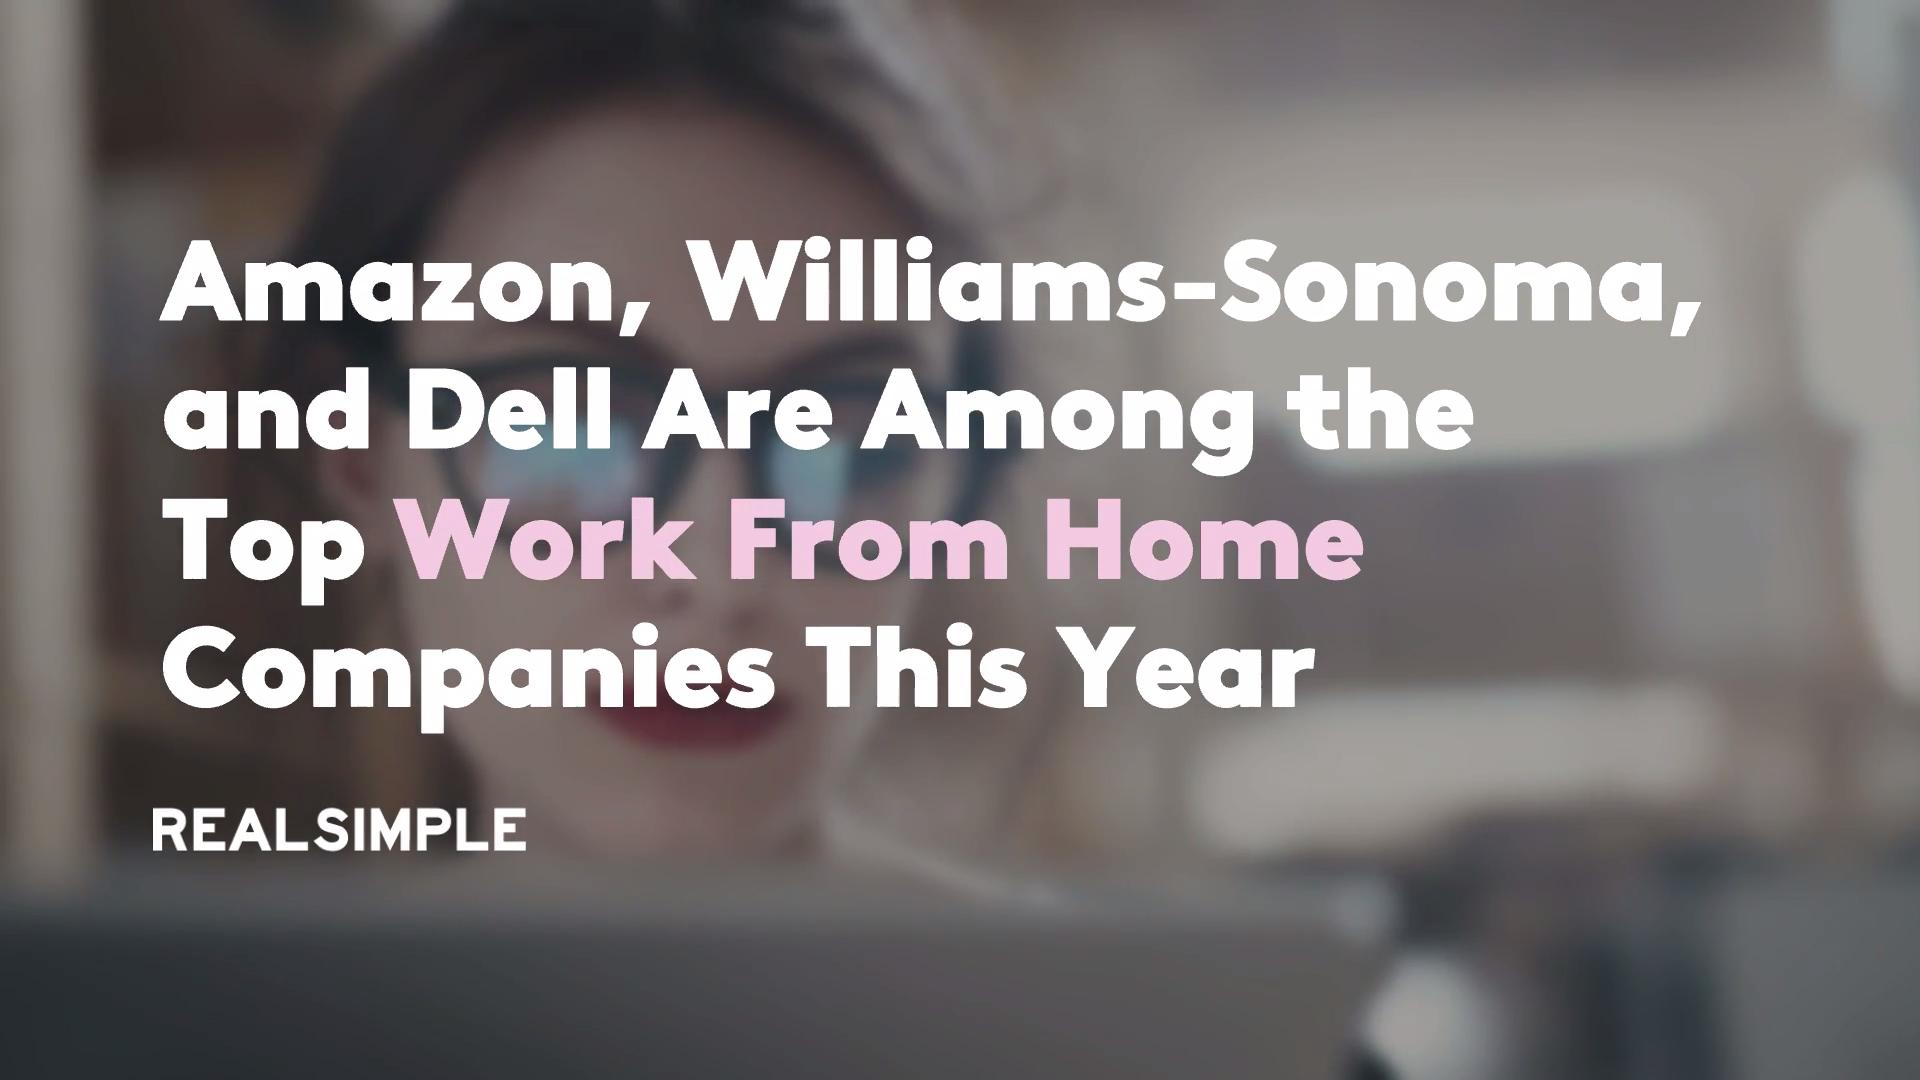 Amazon, Williams-Sonoma, and Dell Are Among the Top Work From Home